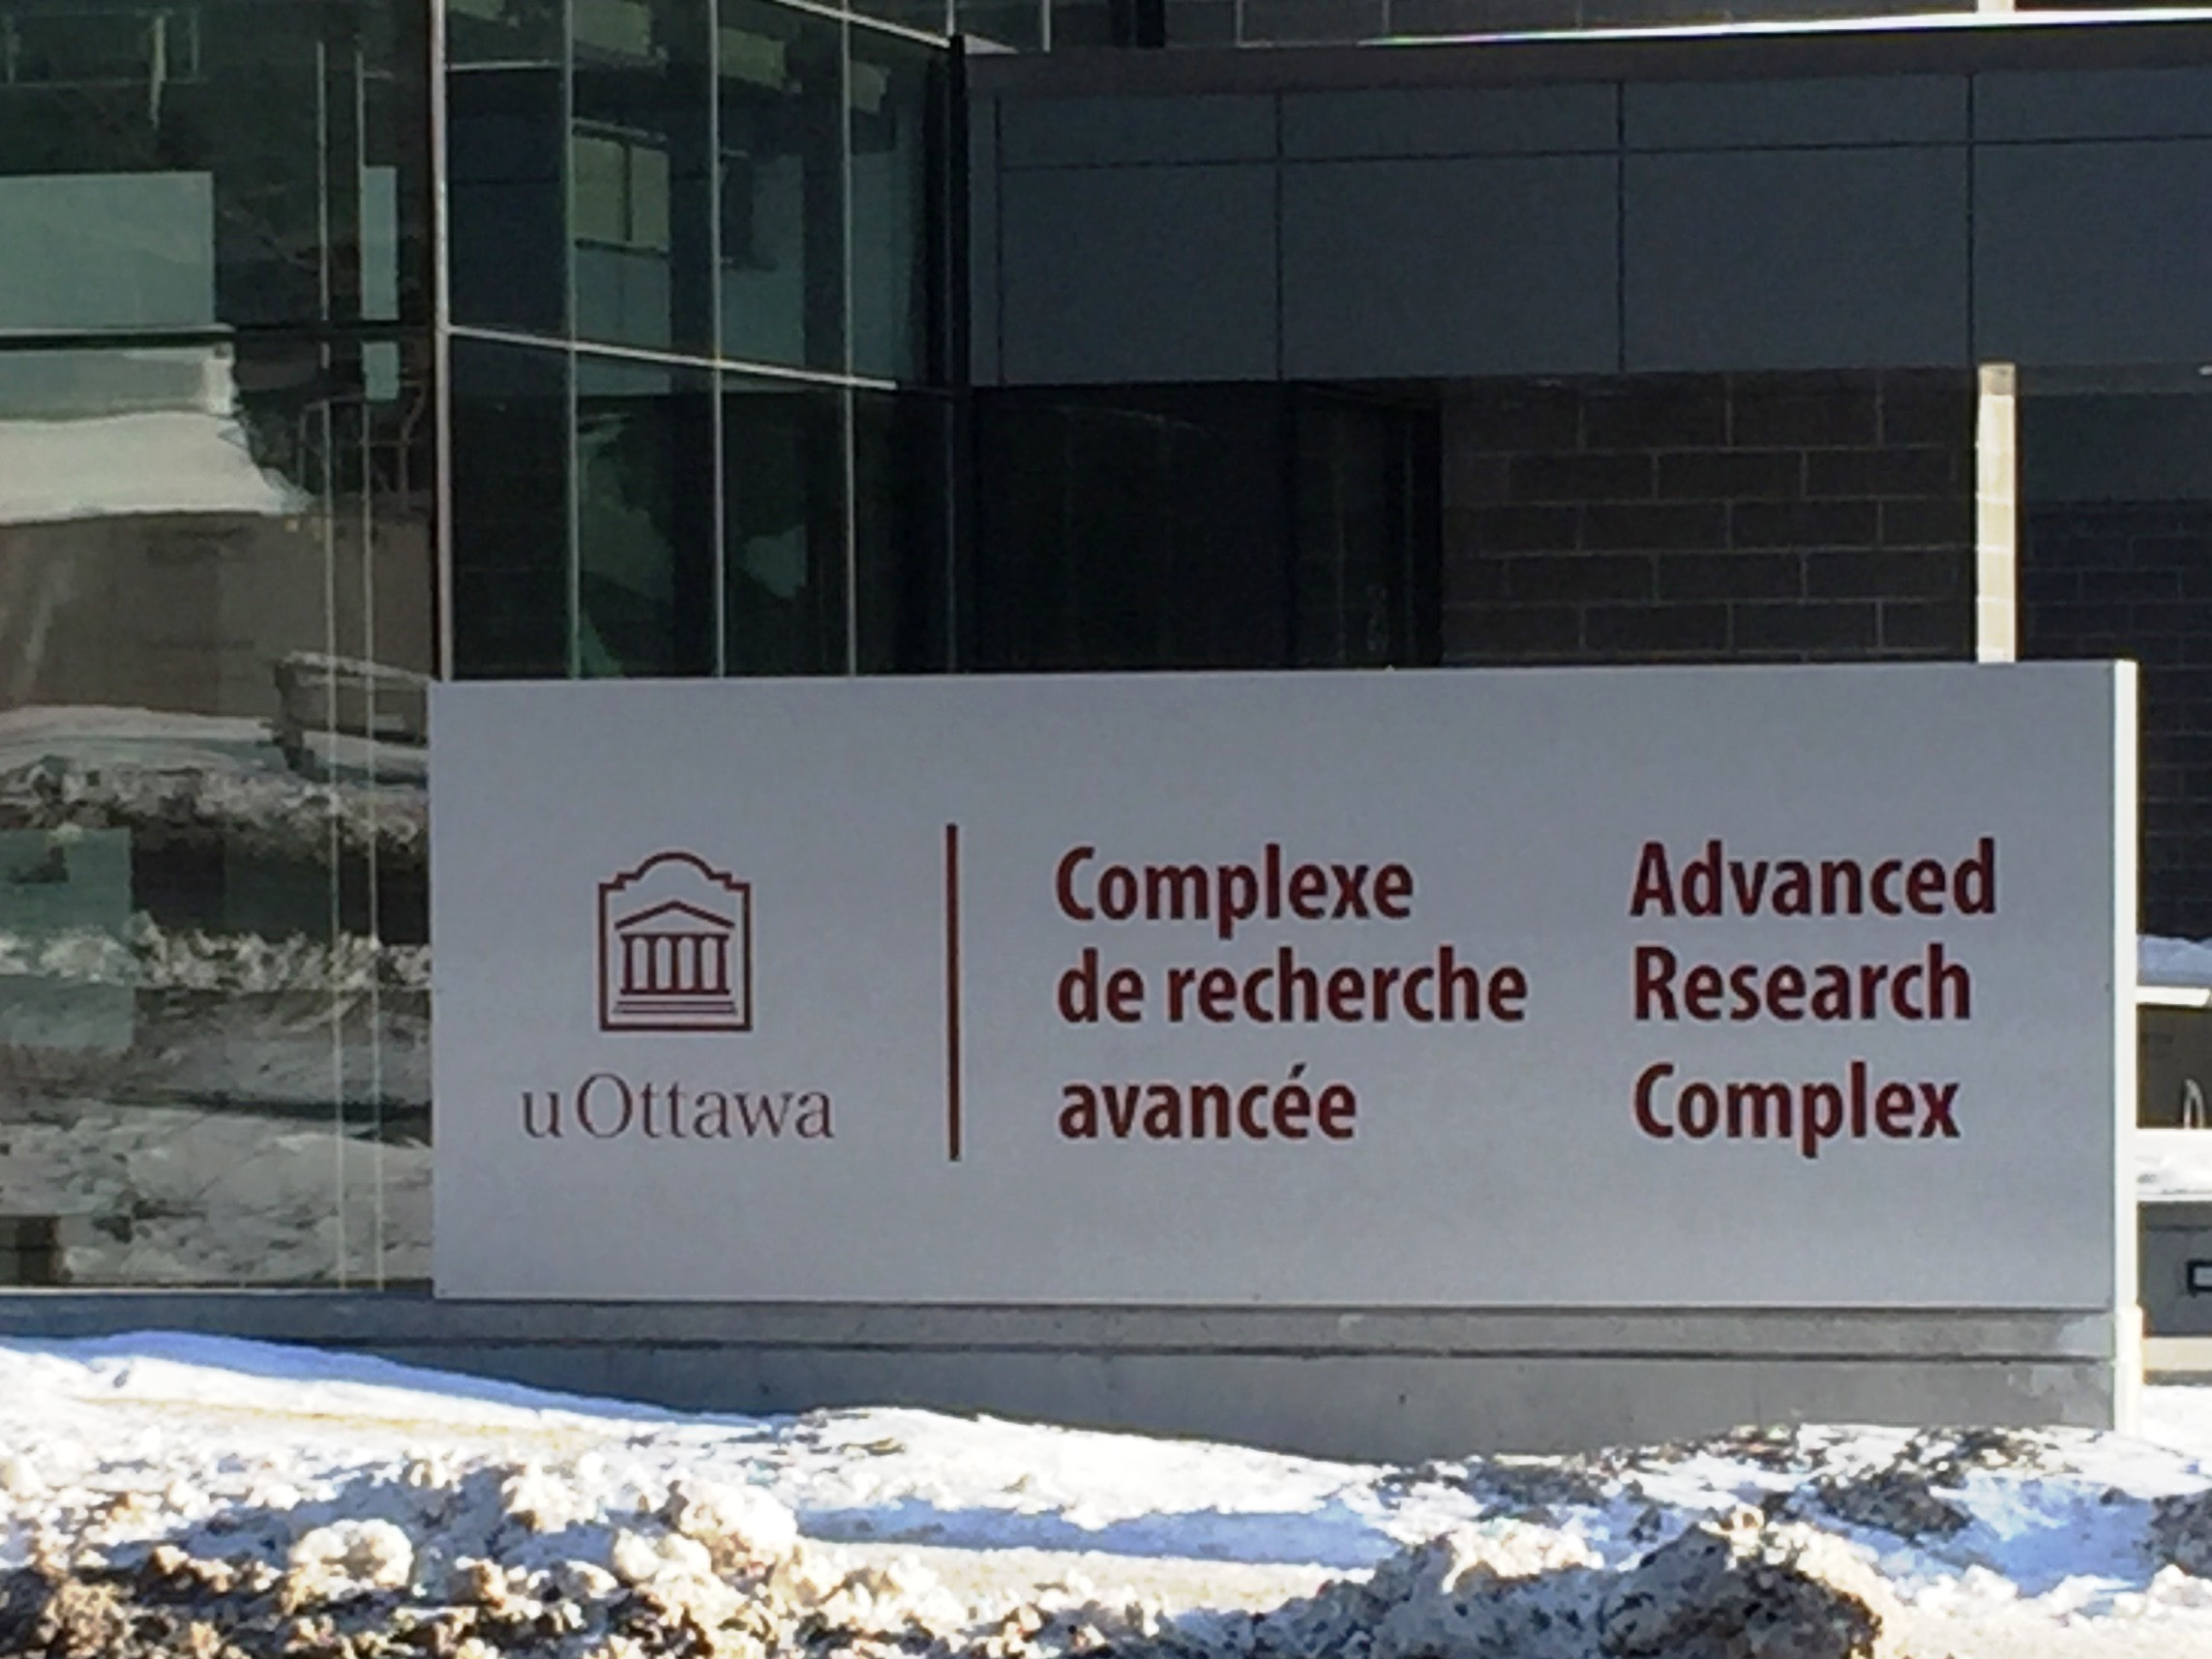 picture of Advanced Research Complex sign